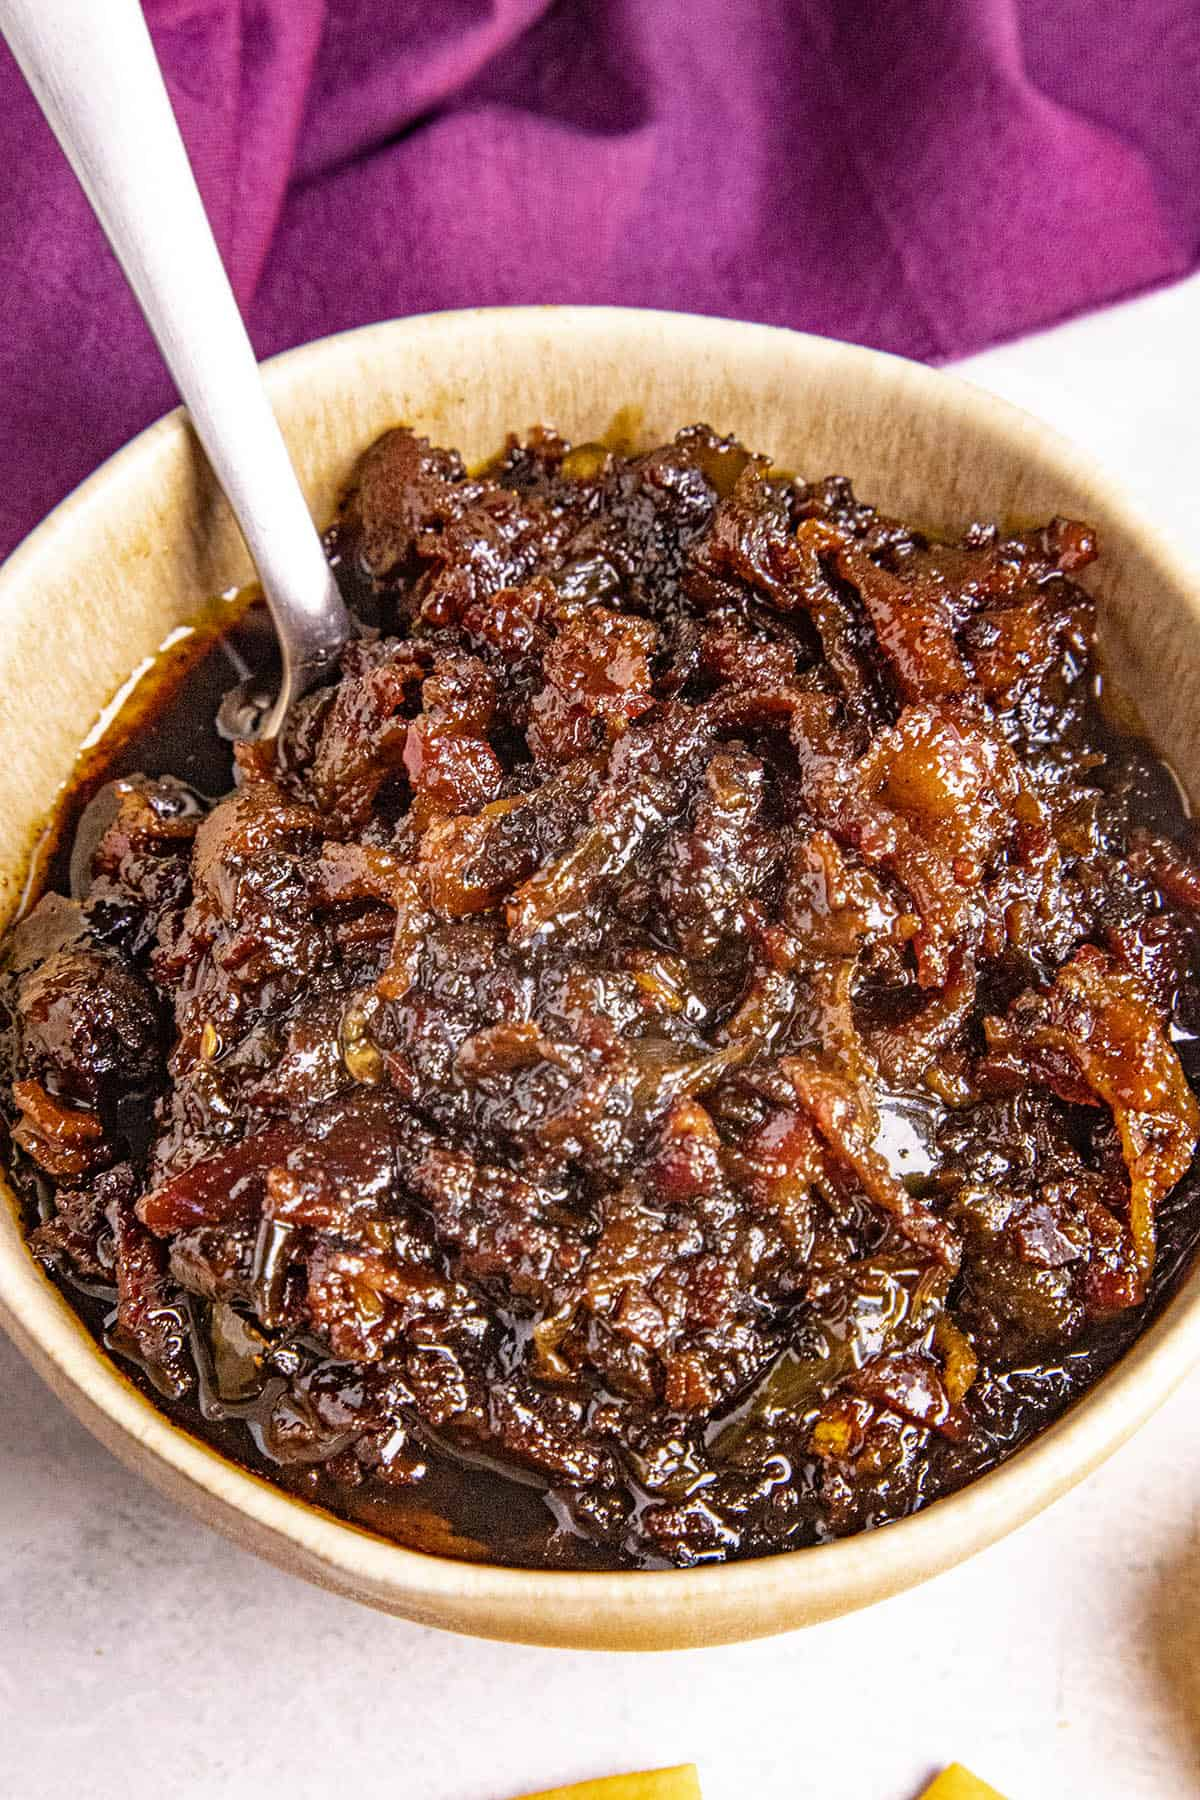 Bacon Jam in a bowl, ready to enjoy